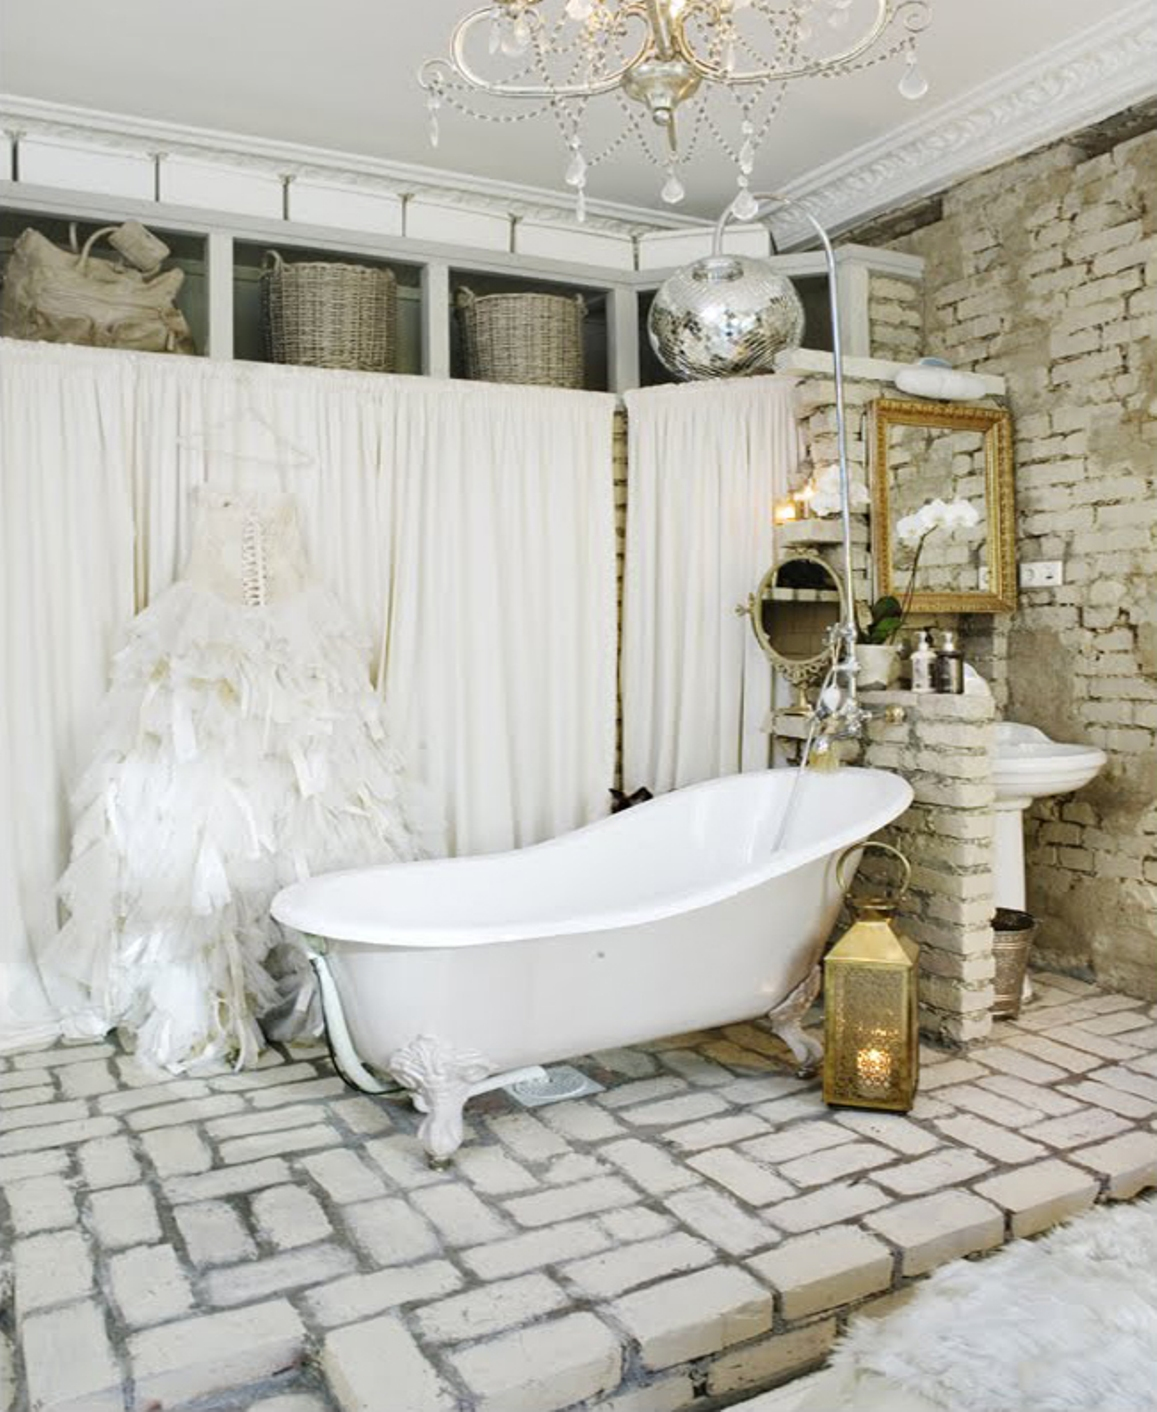 30 great pictures and ideas of old fashioned bathroom tile designes for Vintage bathroom designs